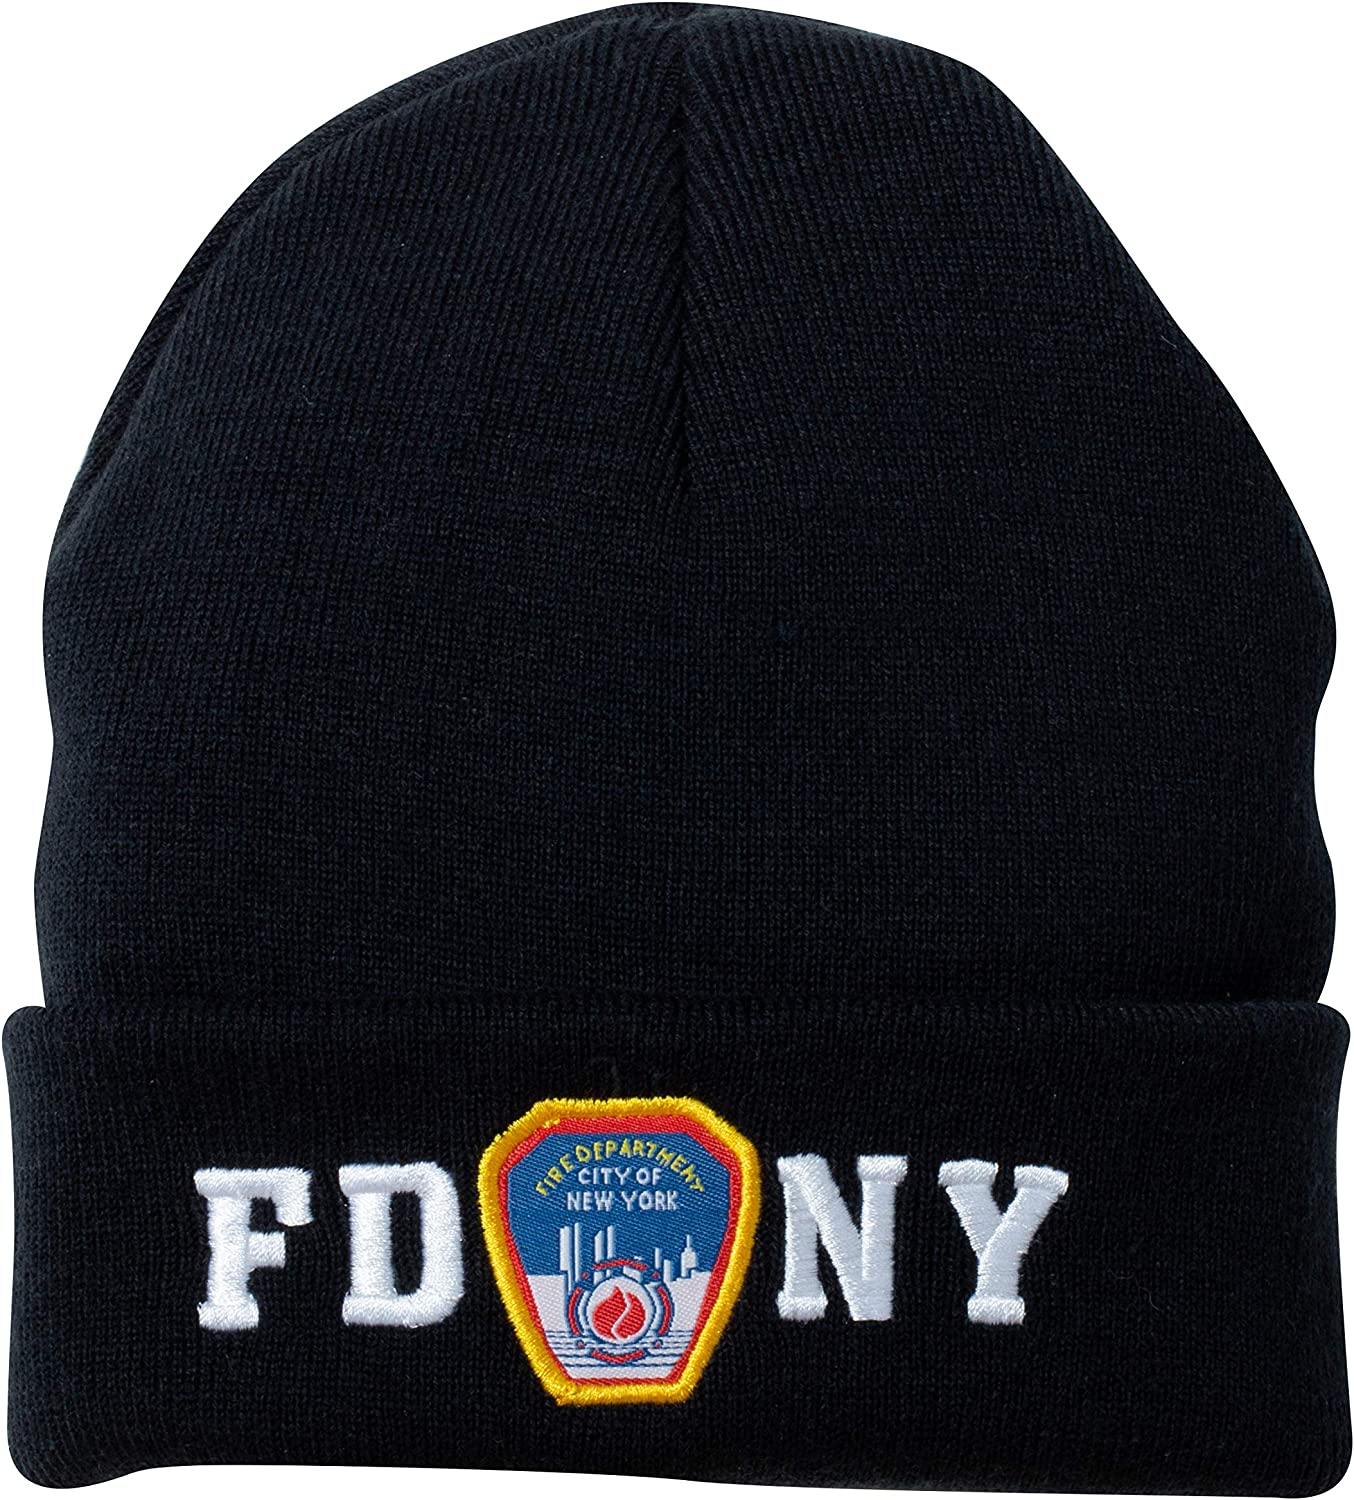 FDNY Winter Hat Fire Department Of New York City Navy /& White One Size Beanie NY